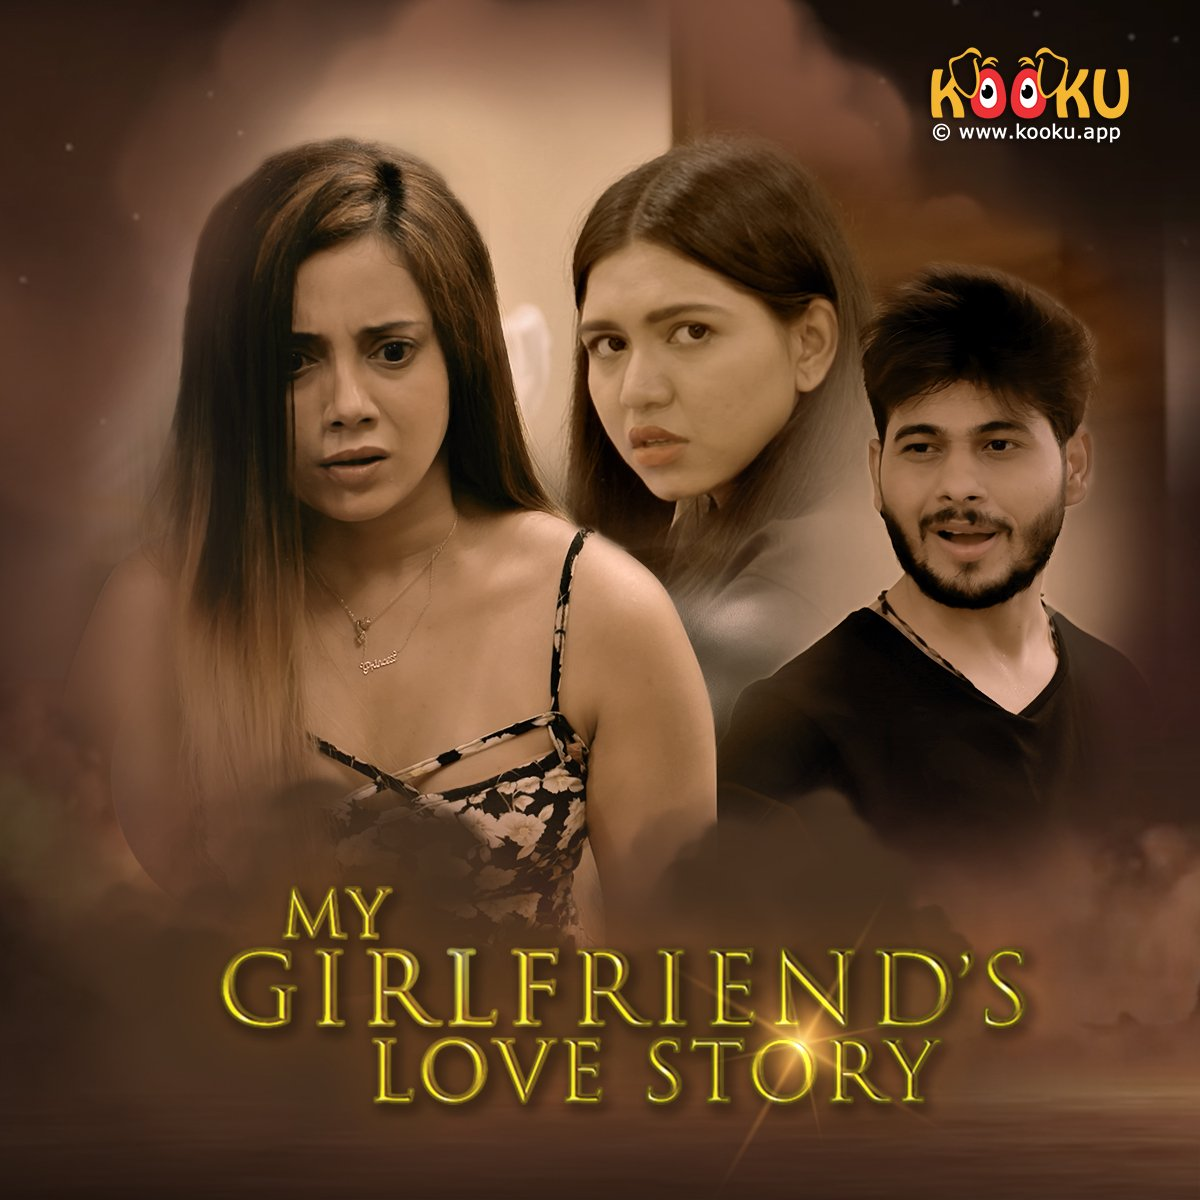 My Girlfriends Love Story 2020 Hindi S01 Complete Kooku App Web Series 720p HDRip 350MB Download